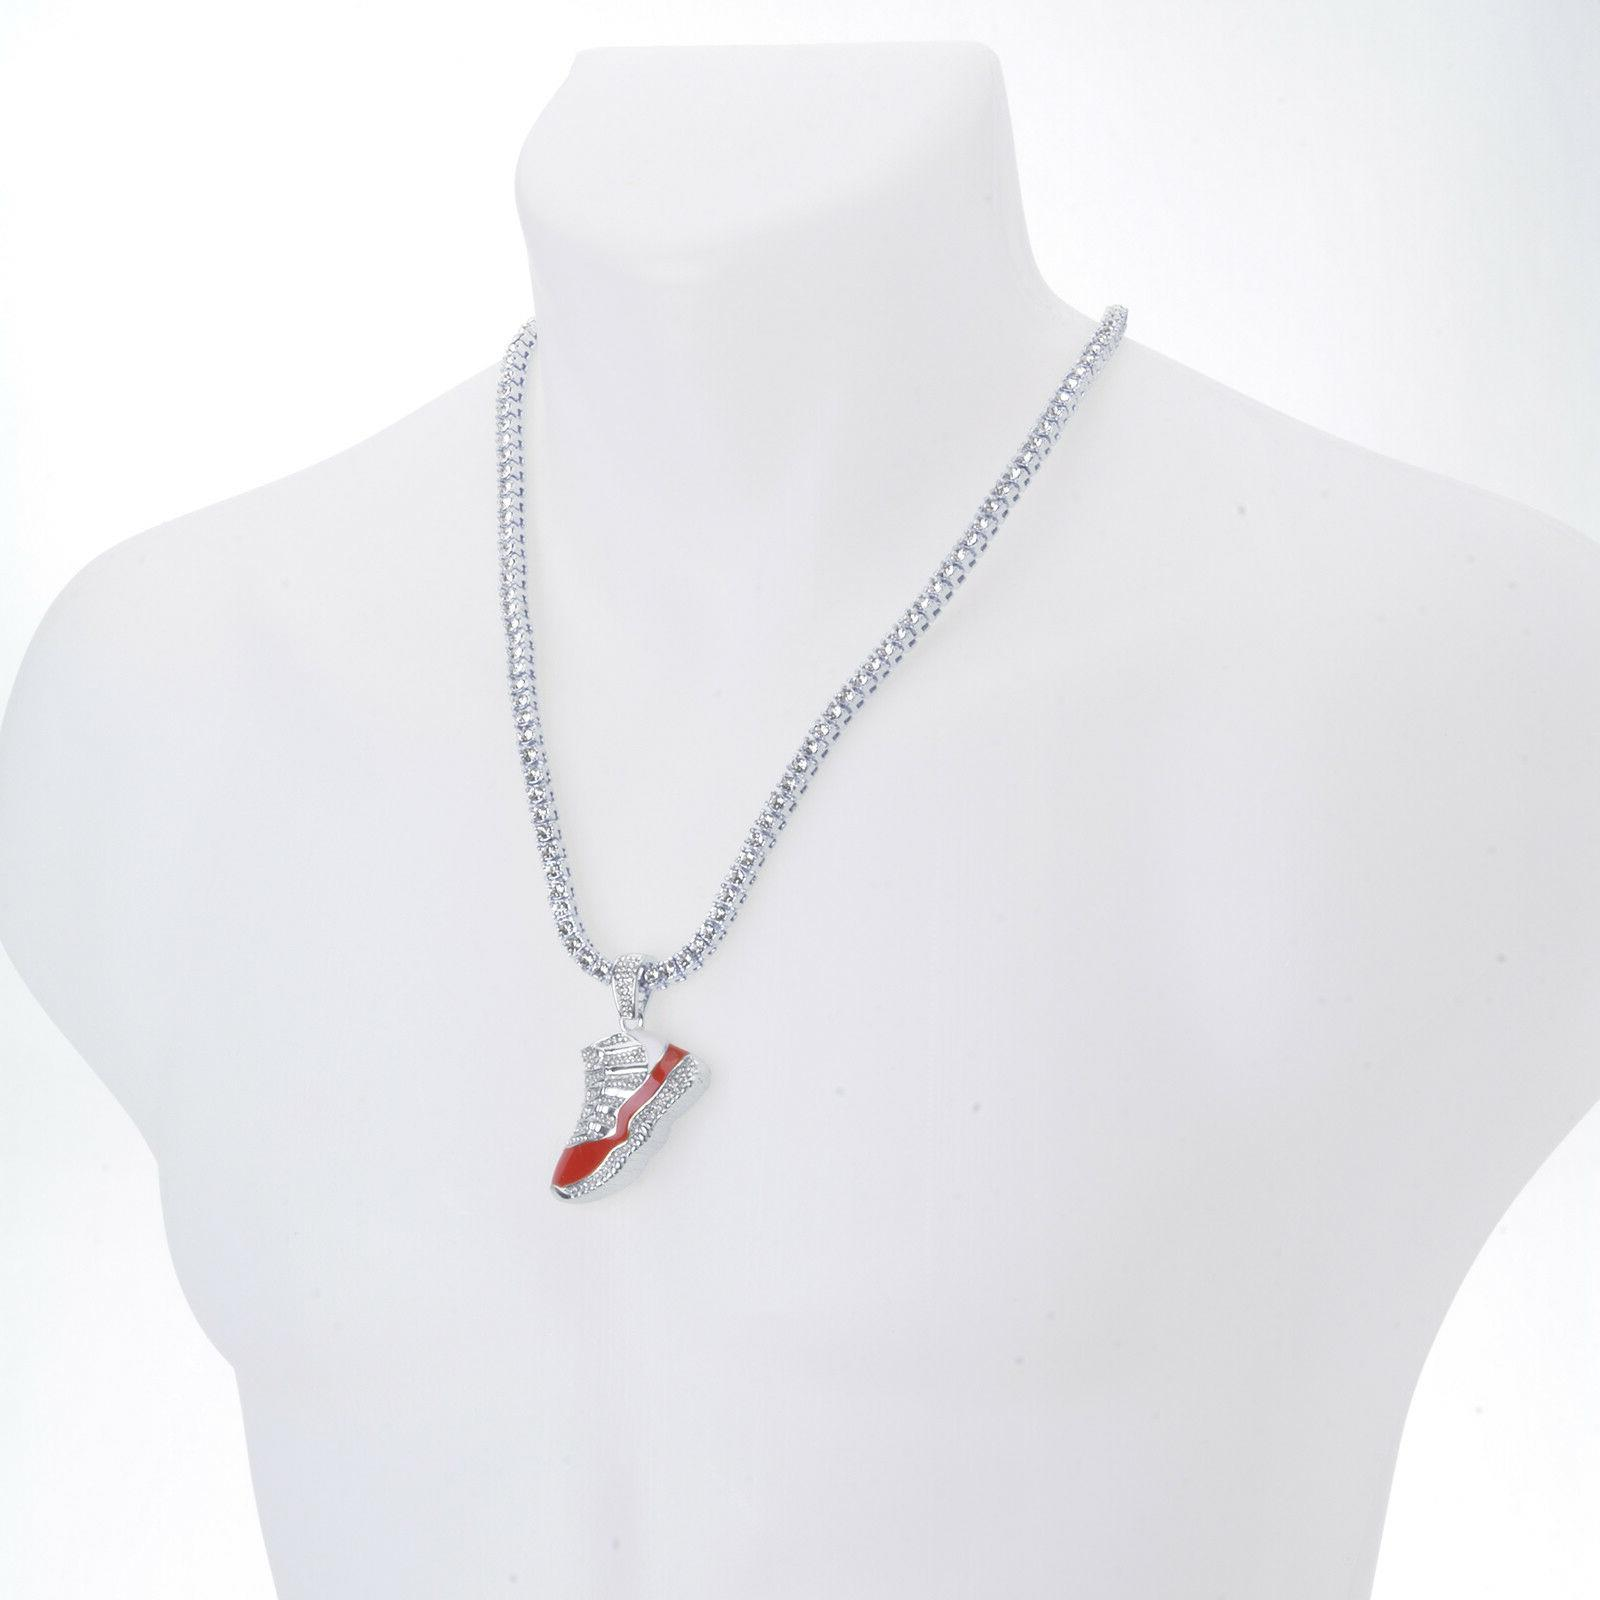 Silver Plated Pendant 24 Chain Necklace S